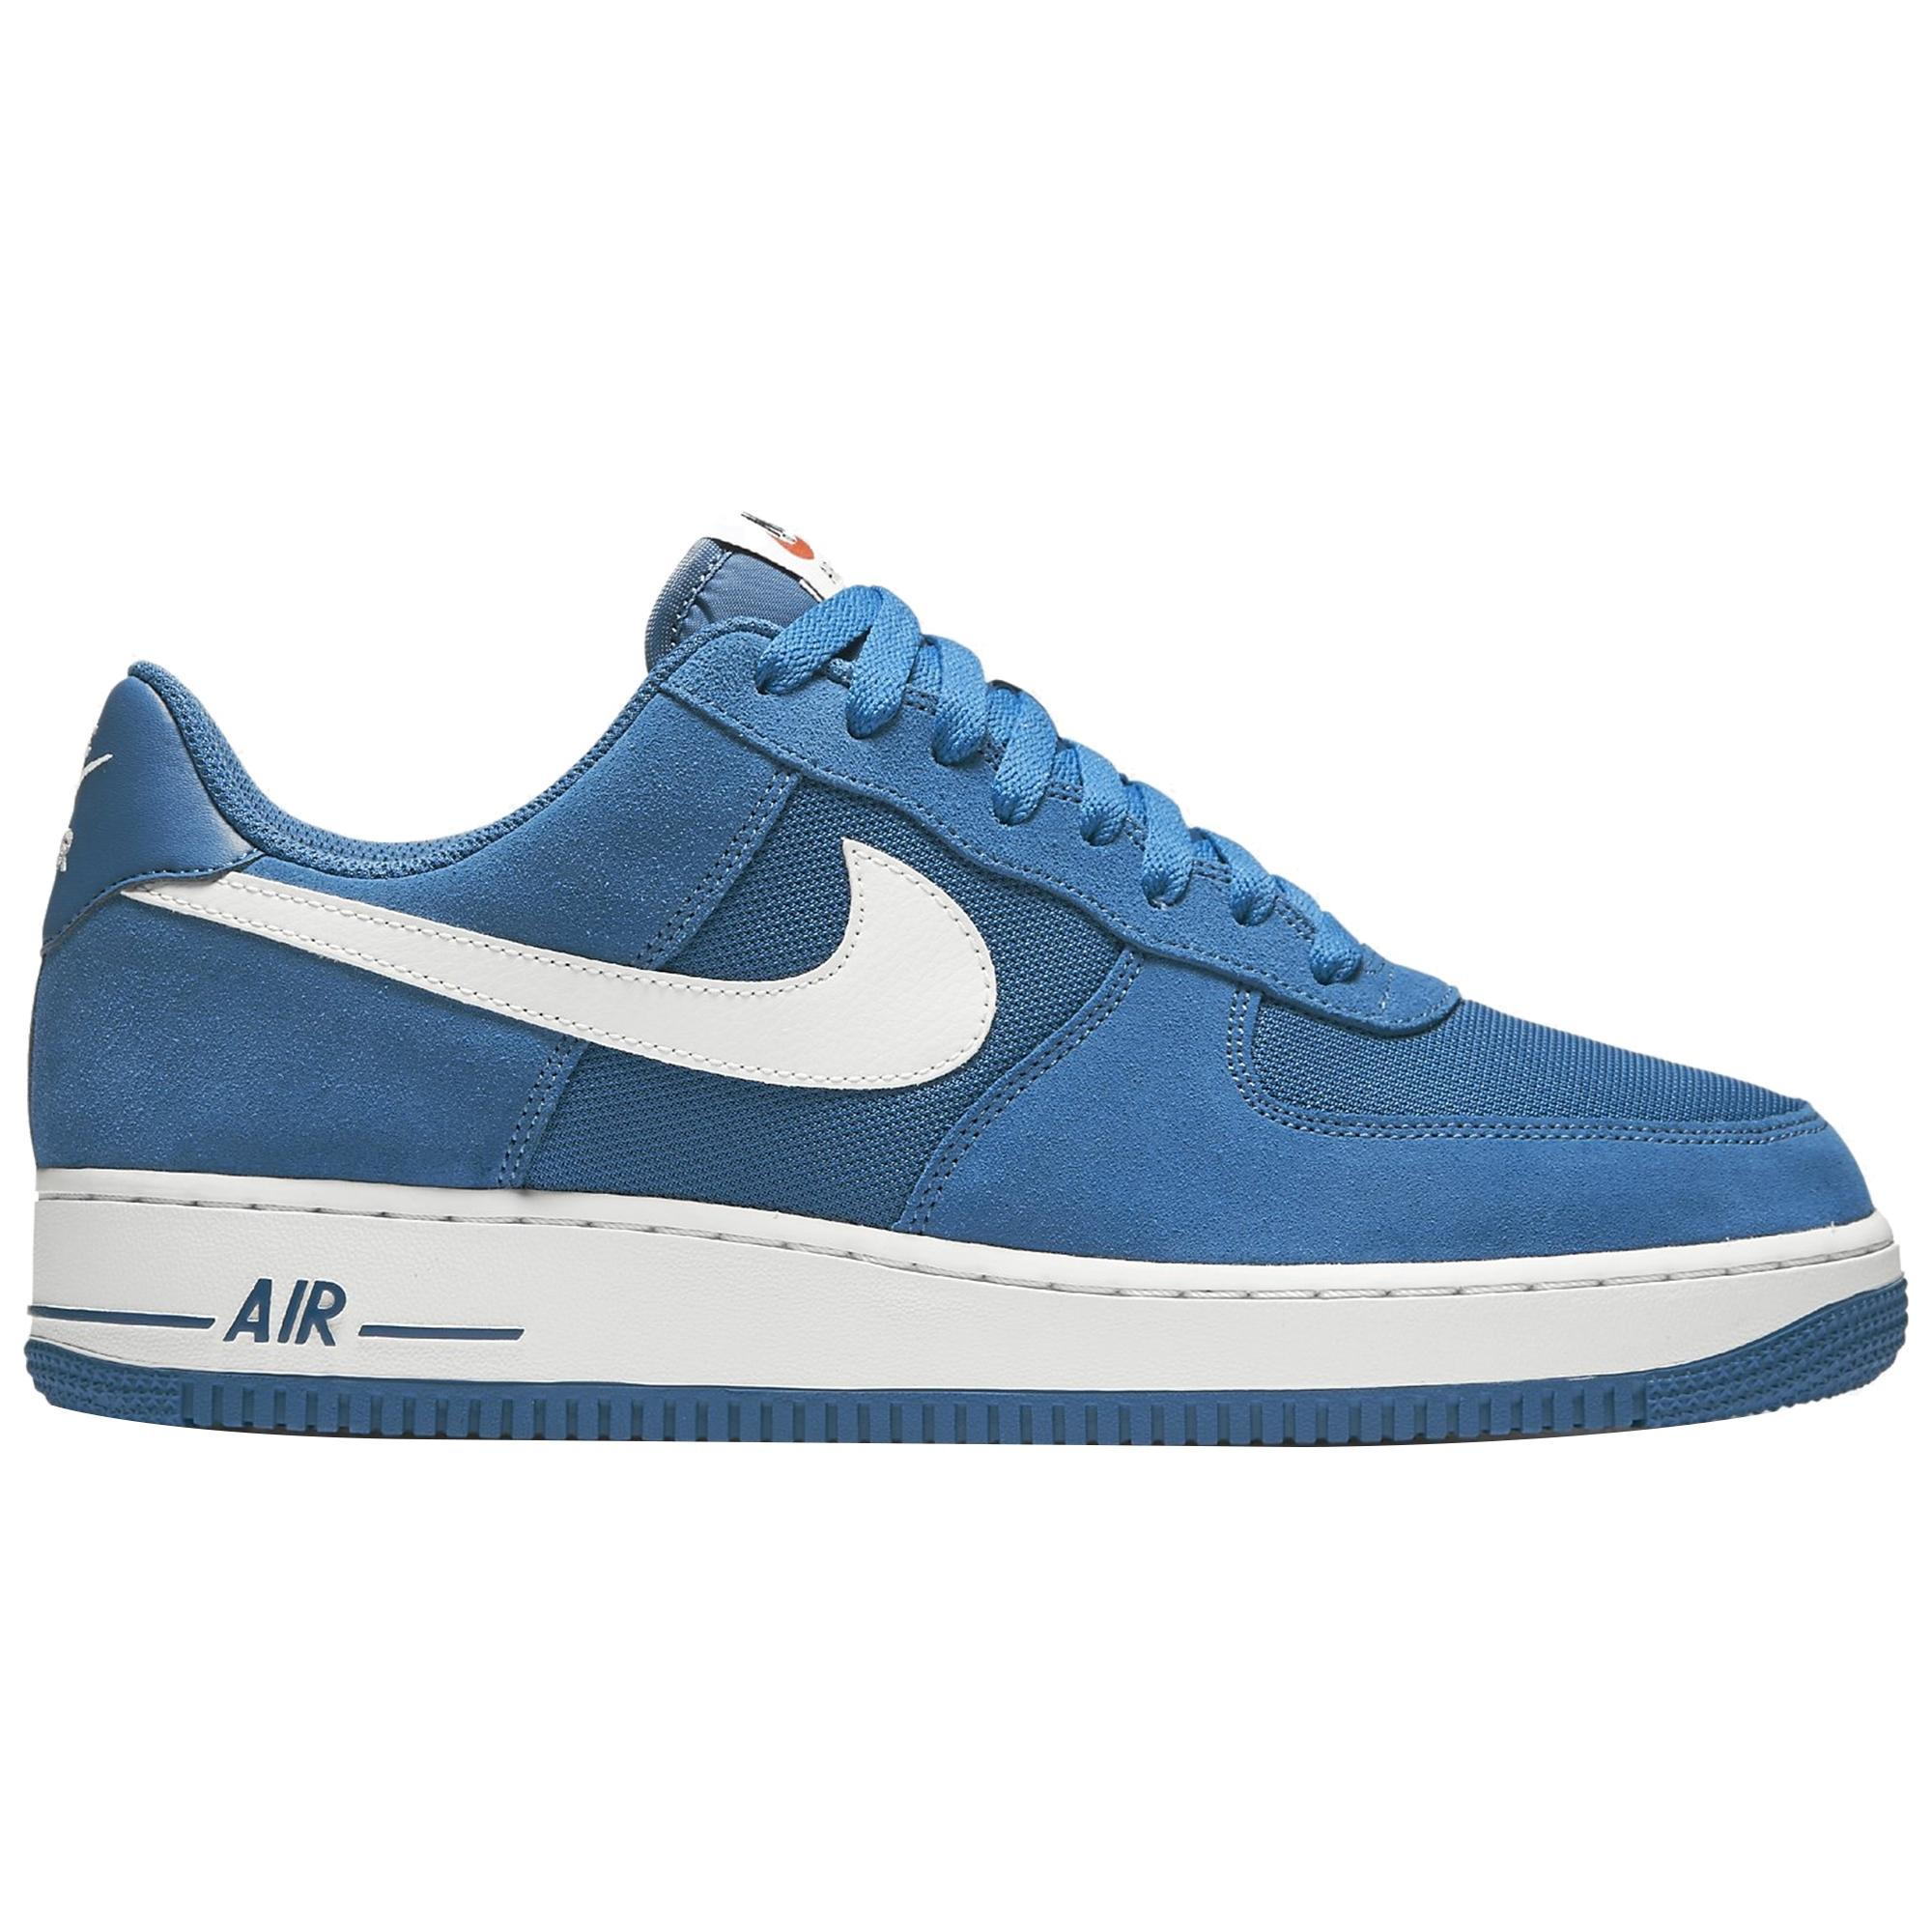 29976d6a4d2ea6 think pink nike air force 25 low profile